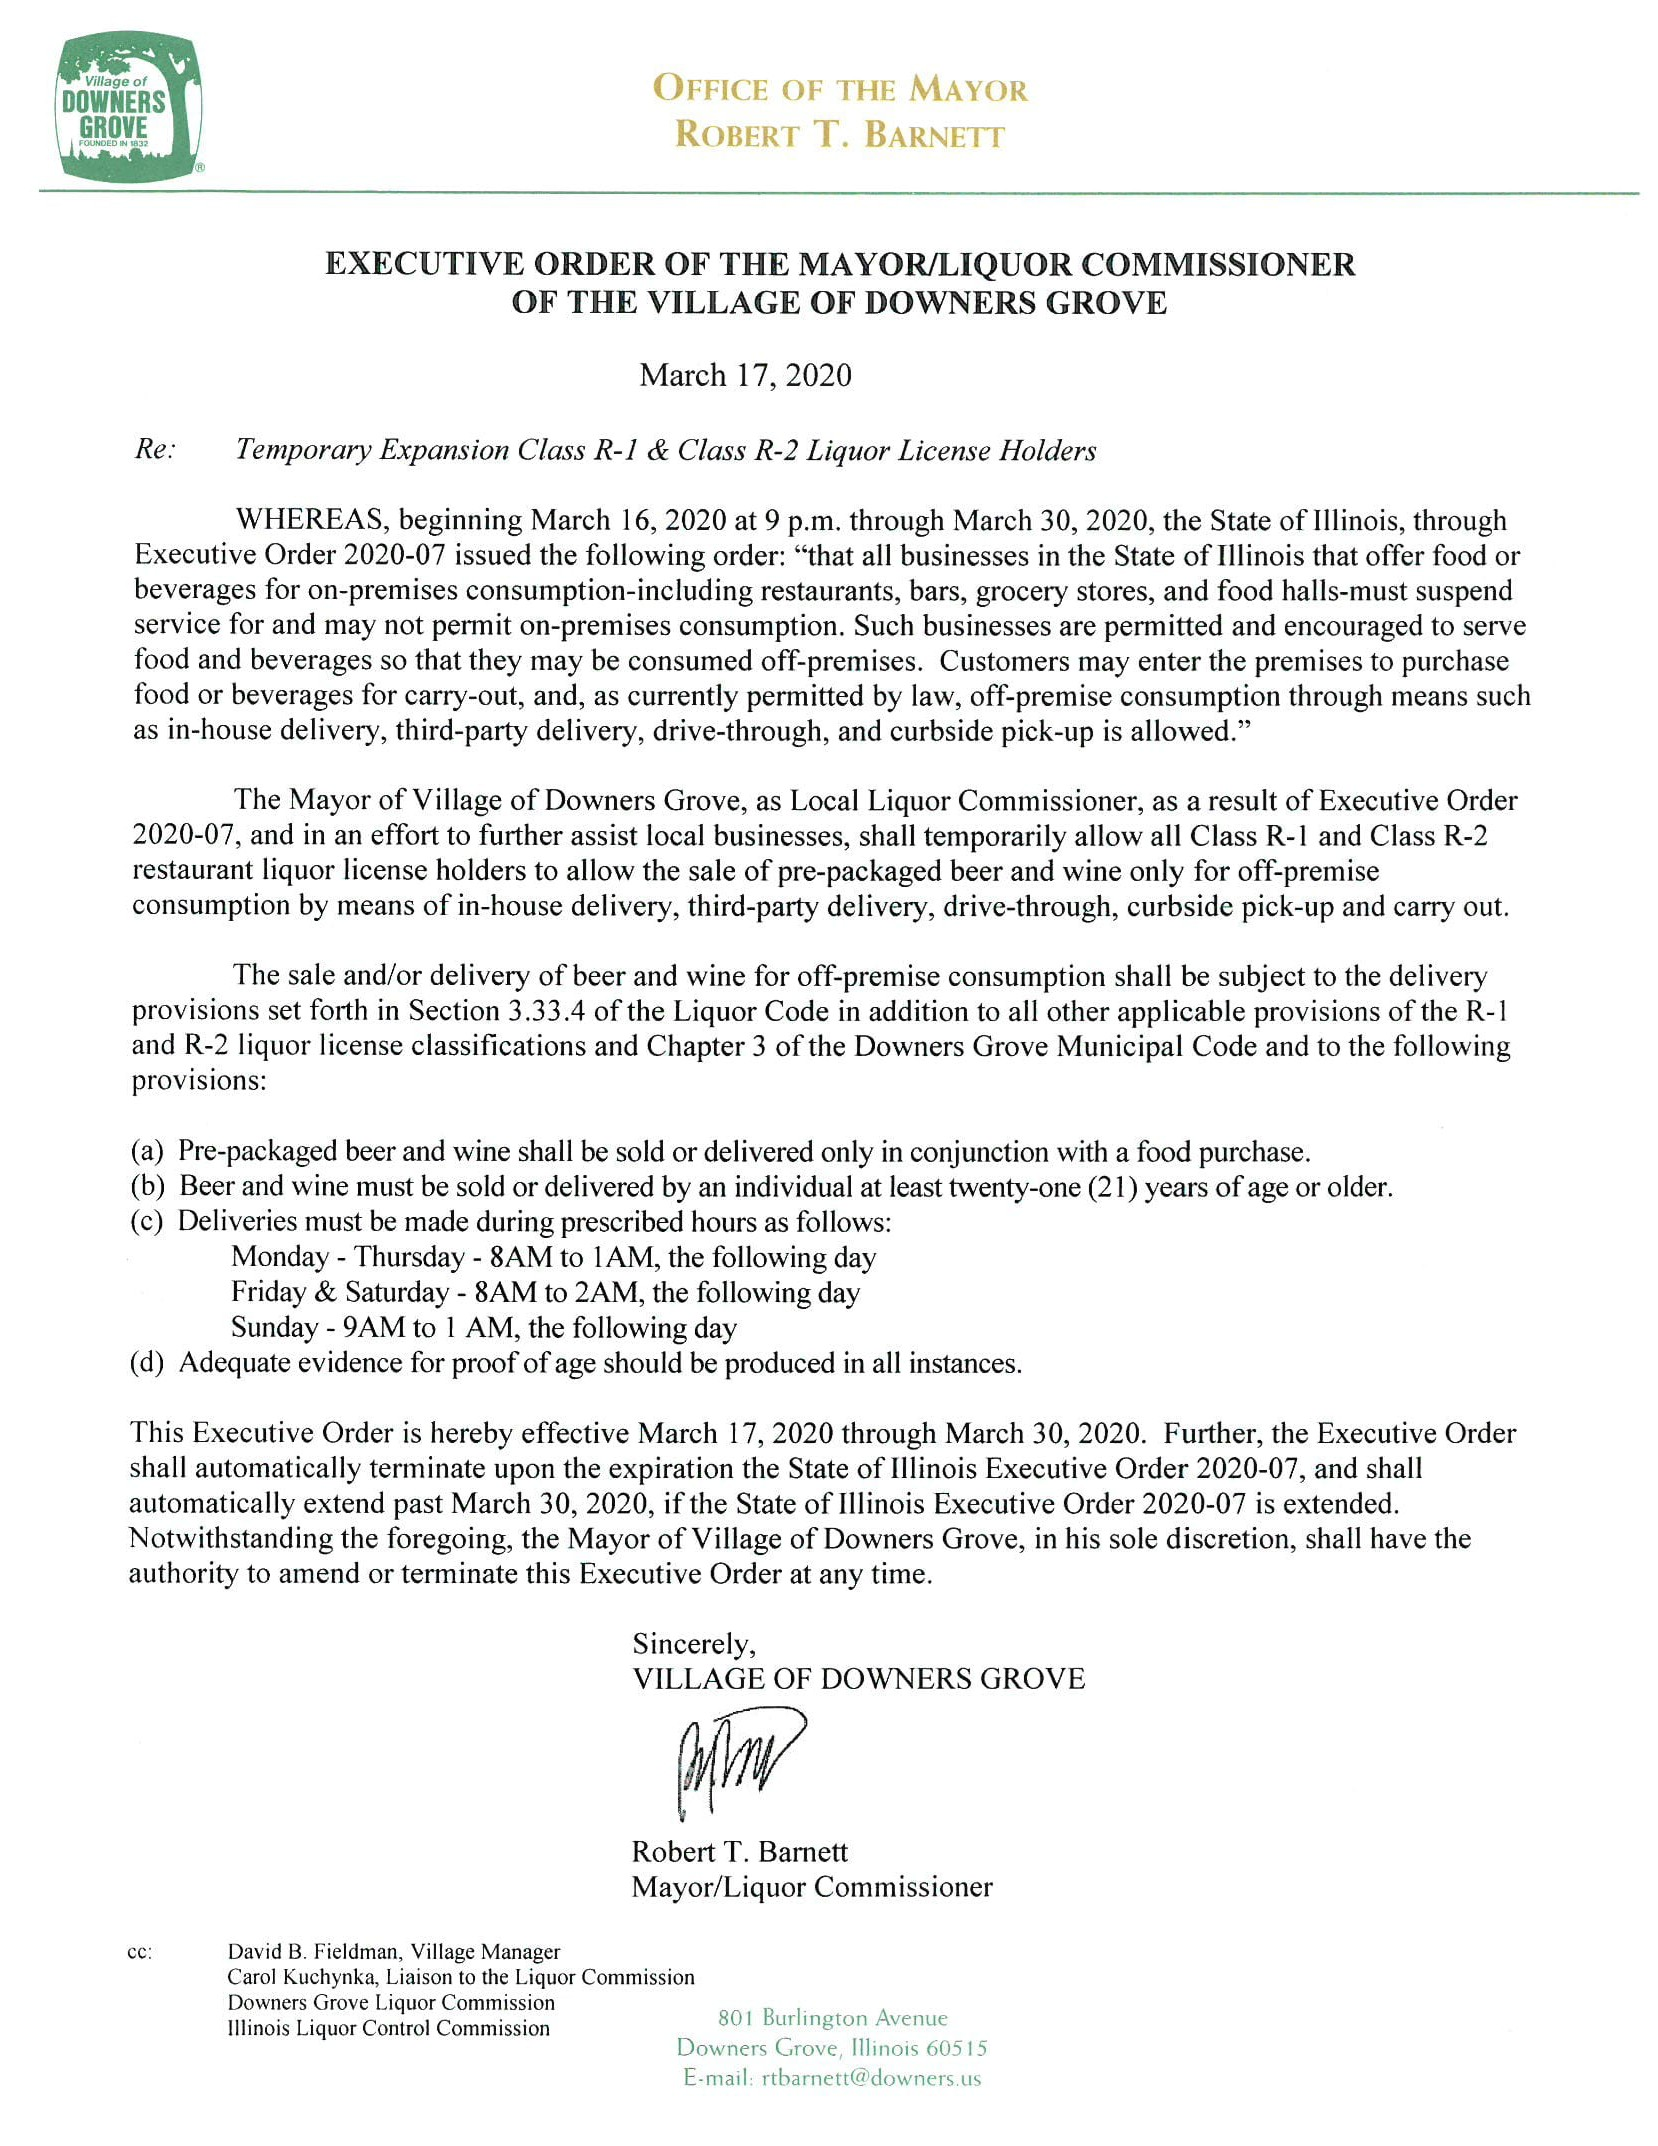 RTB-Executive Order_Liquor Sales_031720-1 - Edited